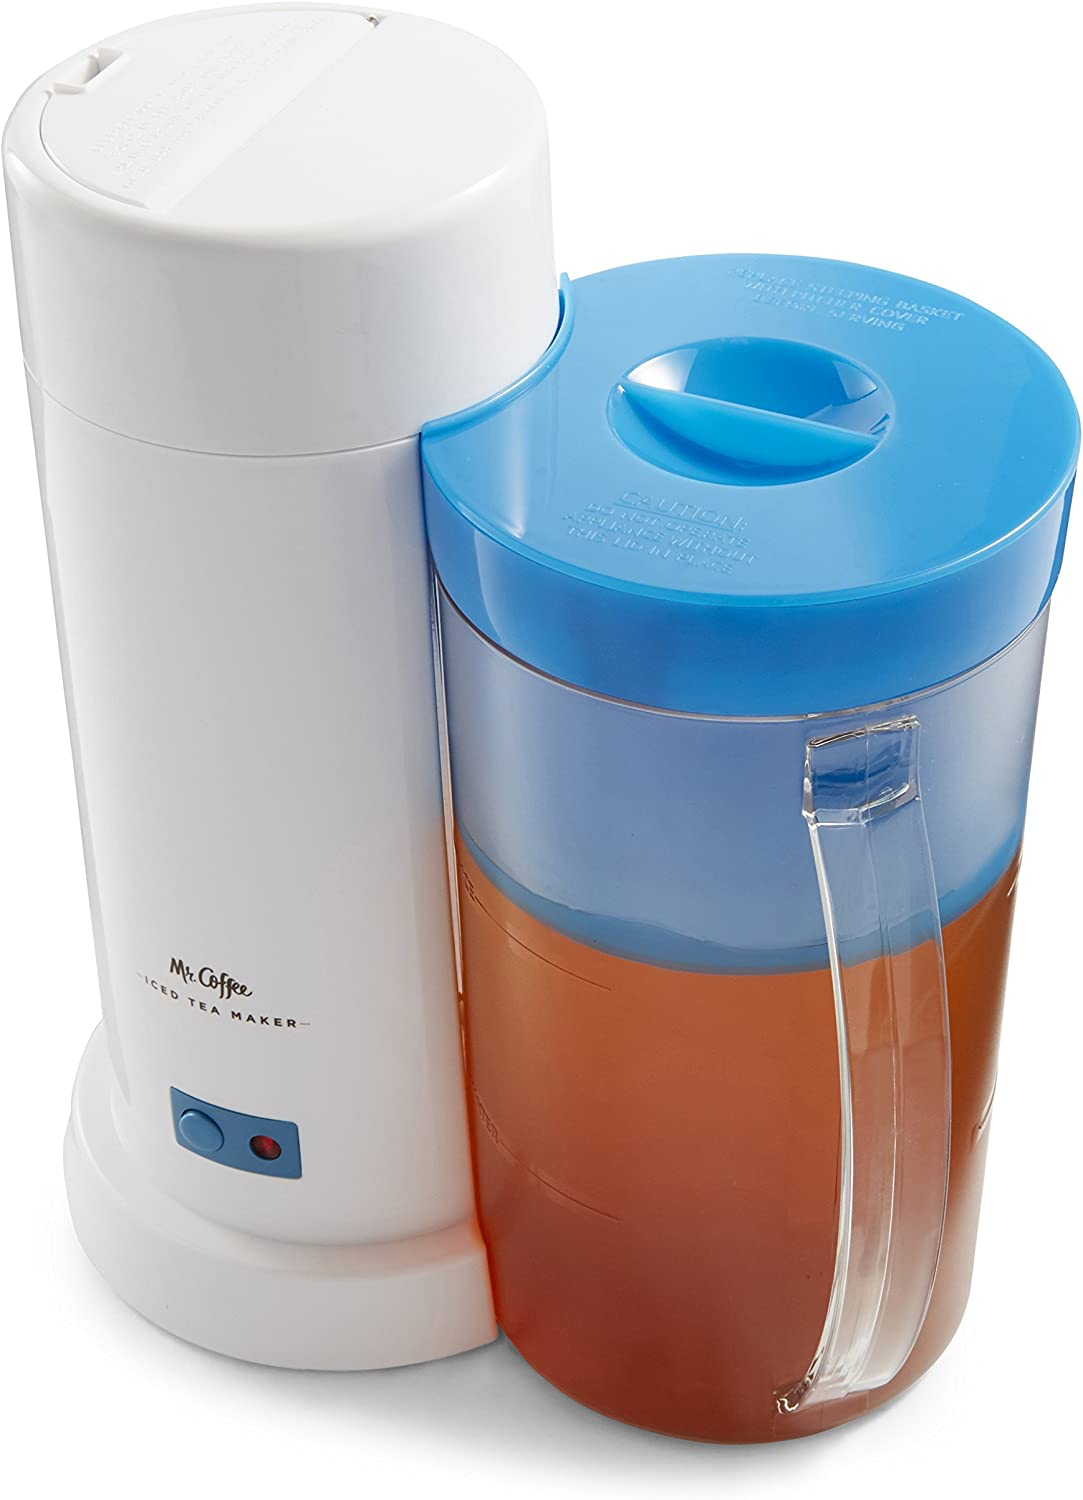 TM1TK Coffee Iced Tea Maker Gift Set With Tumblers and Spoons Mr